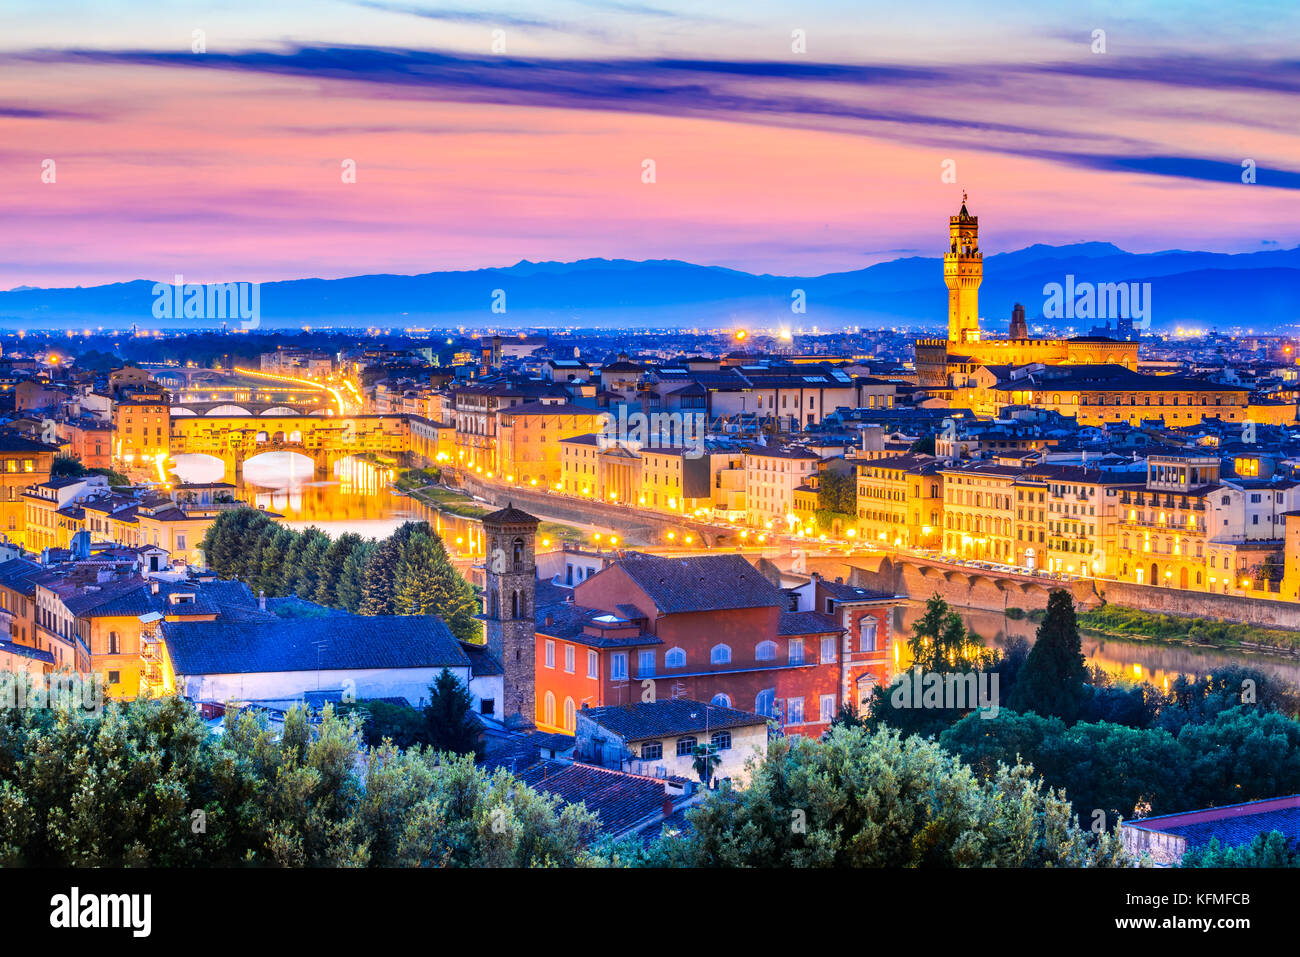 Florence, Tuscany - Night scenery Arno River and Palazzo Vecchio, Renaissance architecture in Italy. - Stock Image